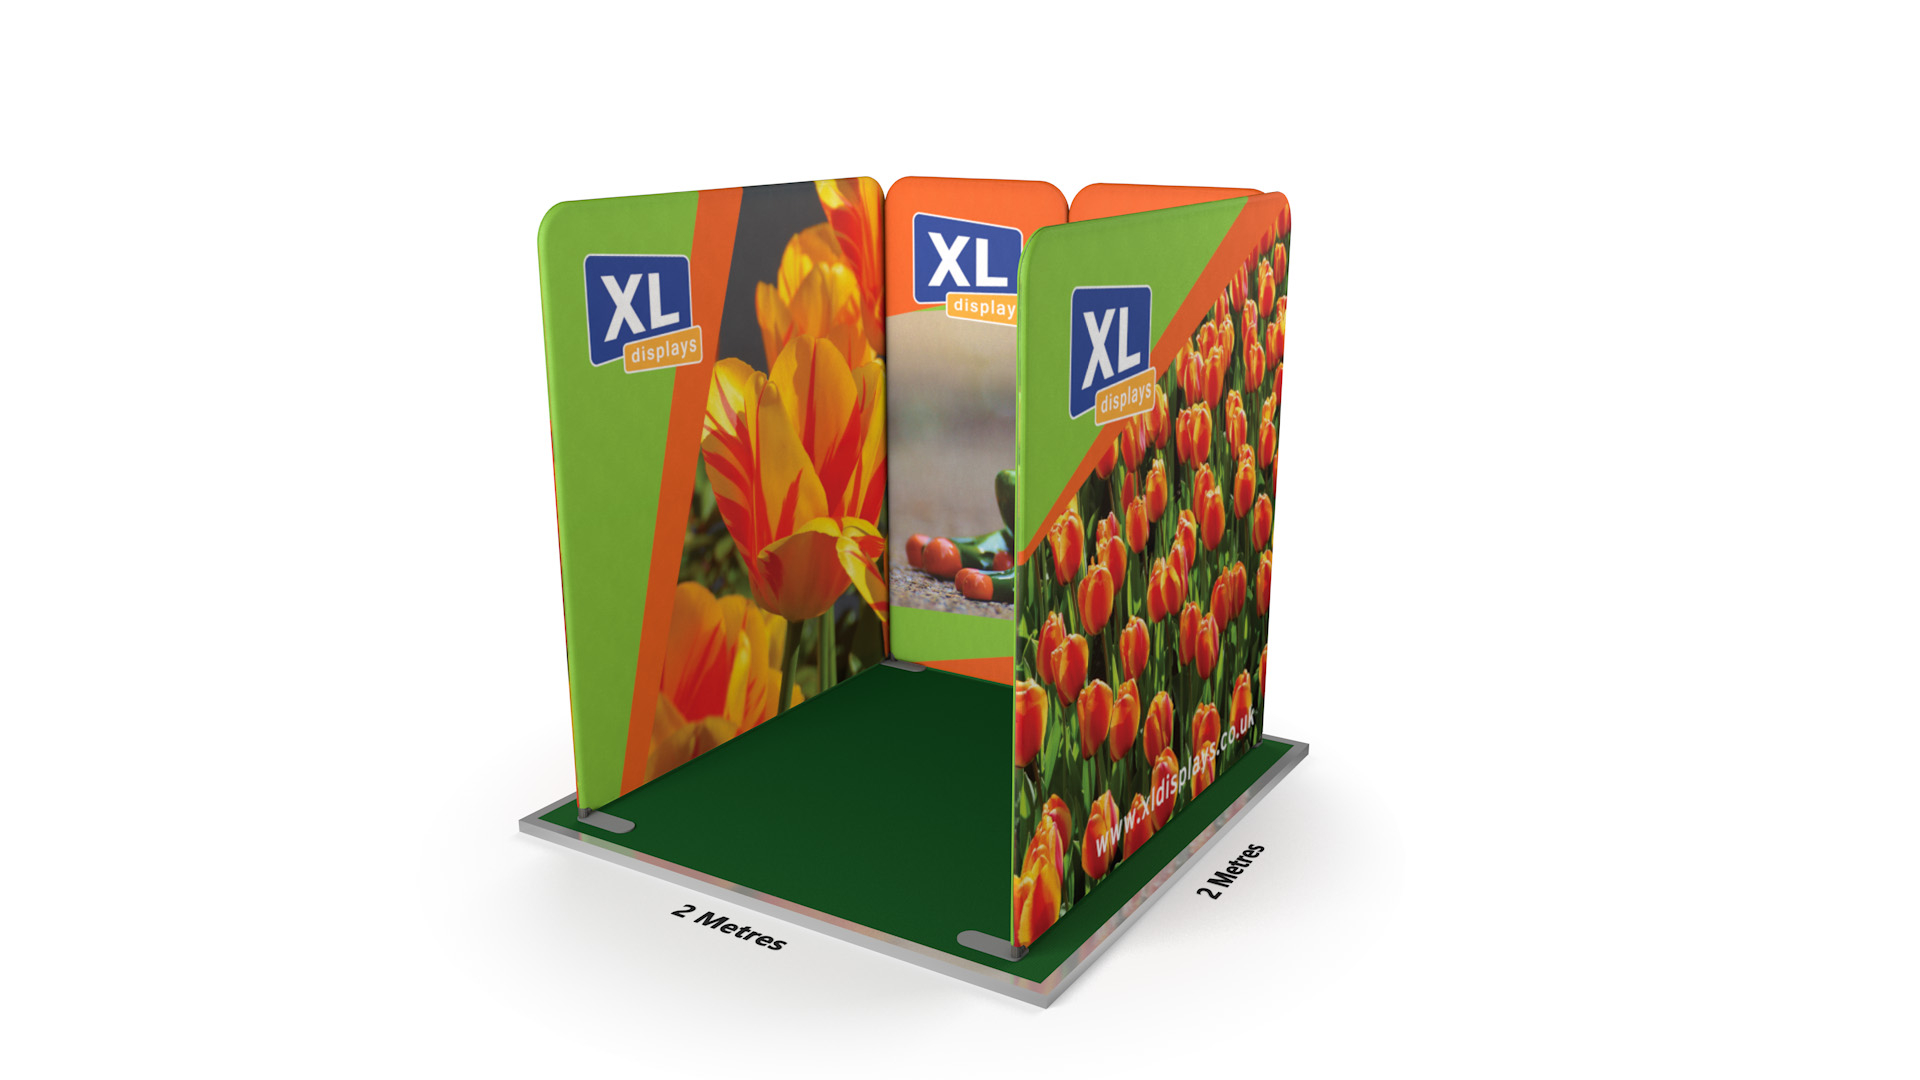 Modulate™ 2m x 2m U-Shaped Fabric Exhibition Stand